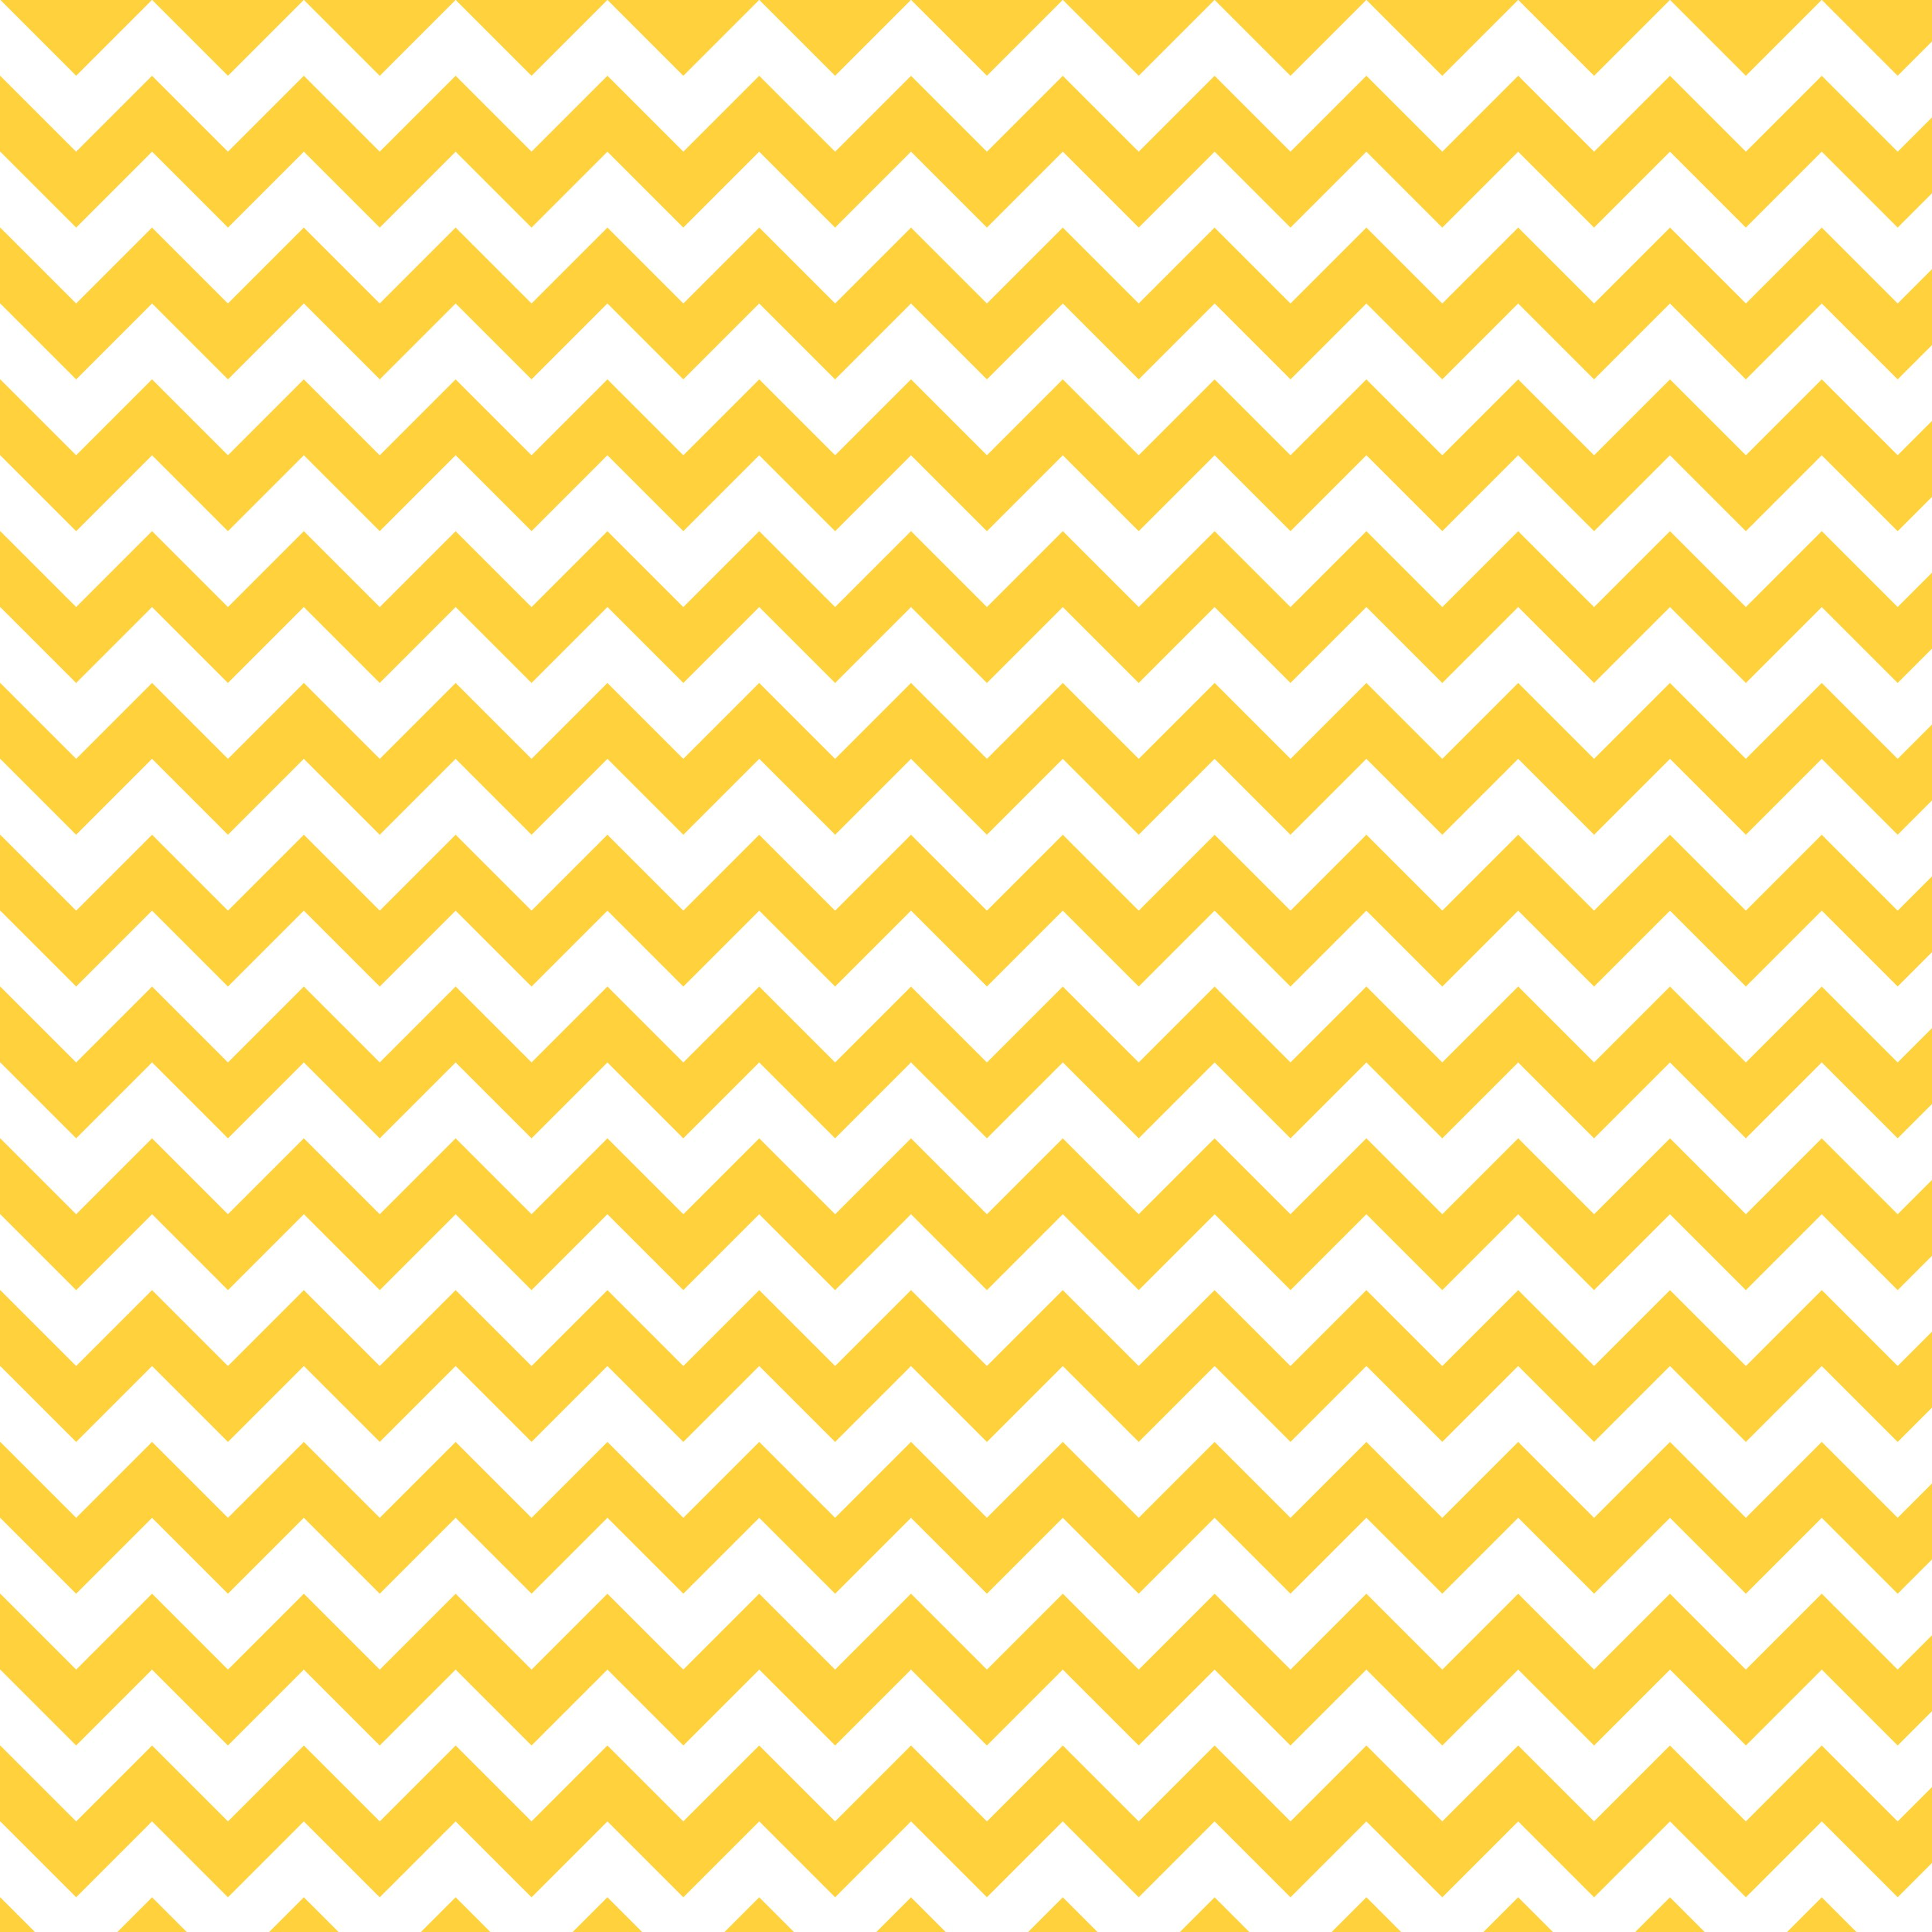 Bright and Cheerful Chevron Digital Paper-Seamless example image 5